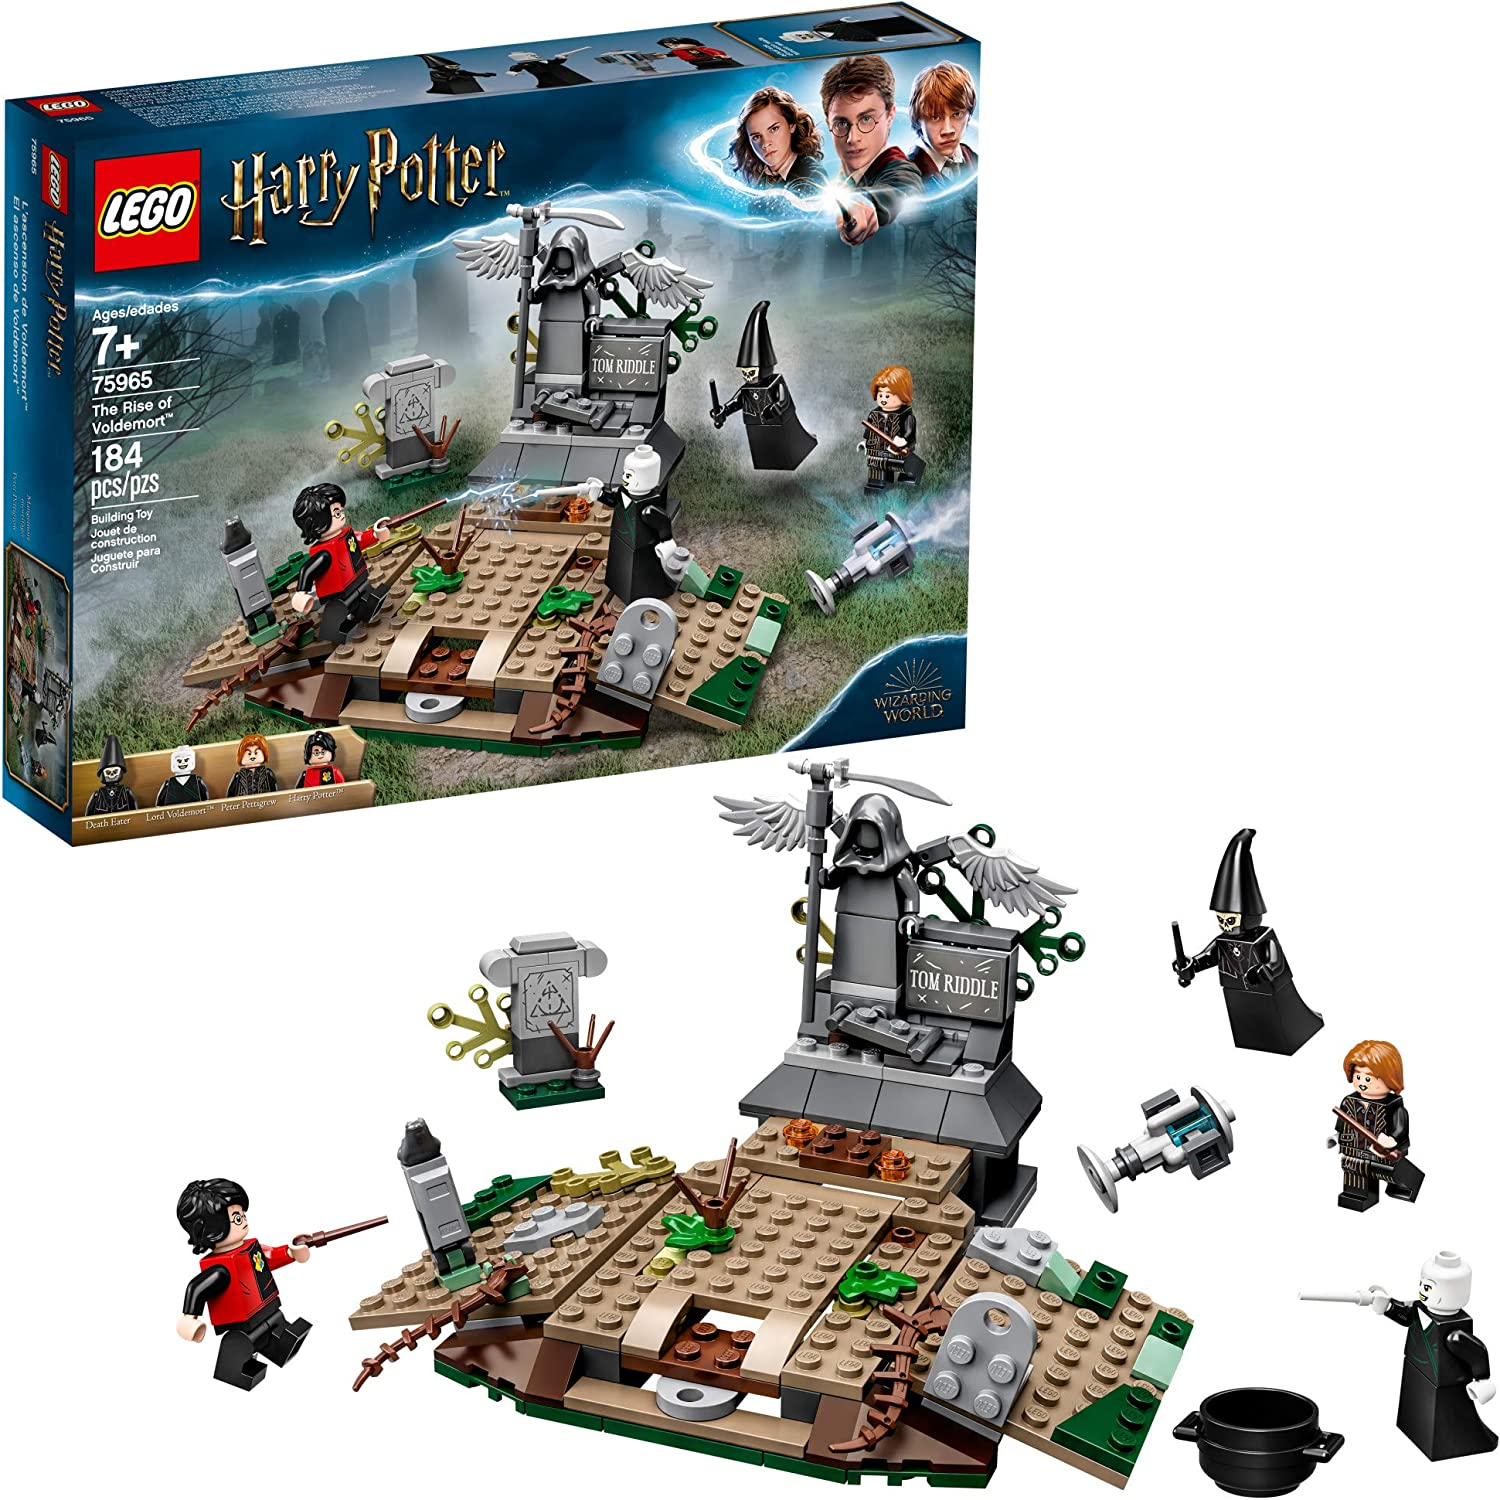 Amazon Com Lego Harry Potter And The Goblet Of Fire The Rise Of Voldemort 75965 Building Kit 184 Pieces Toys Games